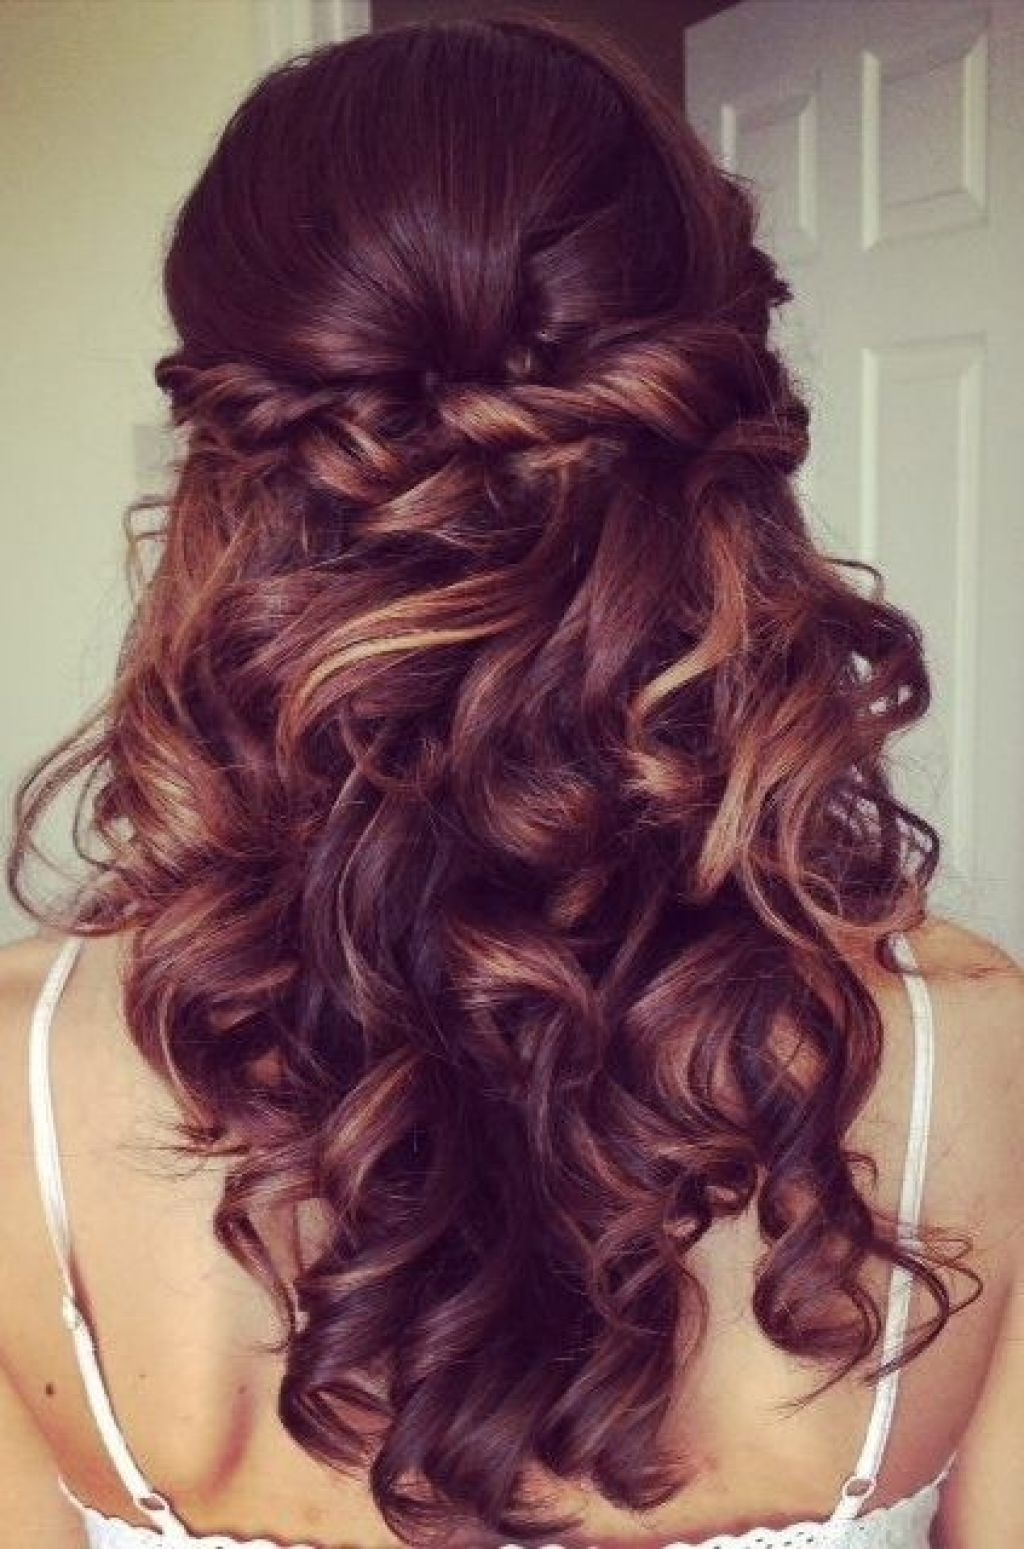 Half Up Down Prom Hairstyles Can Elegant Cute Formal Hair Curly Inside Current Hair Half Up Half Down Wedding Hairstyles Long Curly (View 3 of 15)